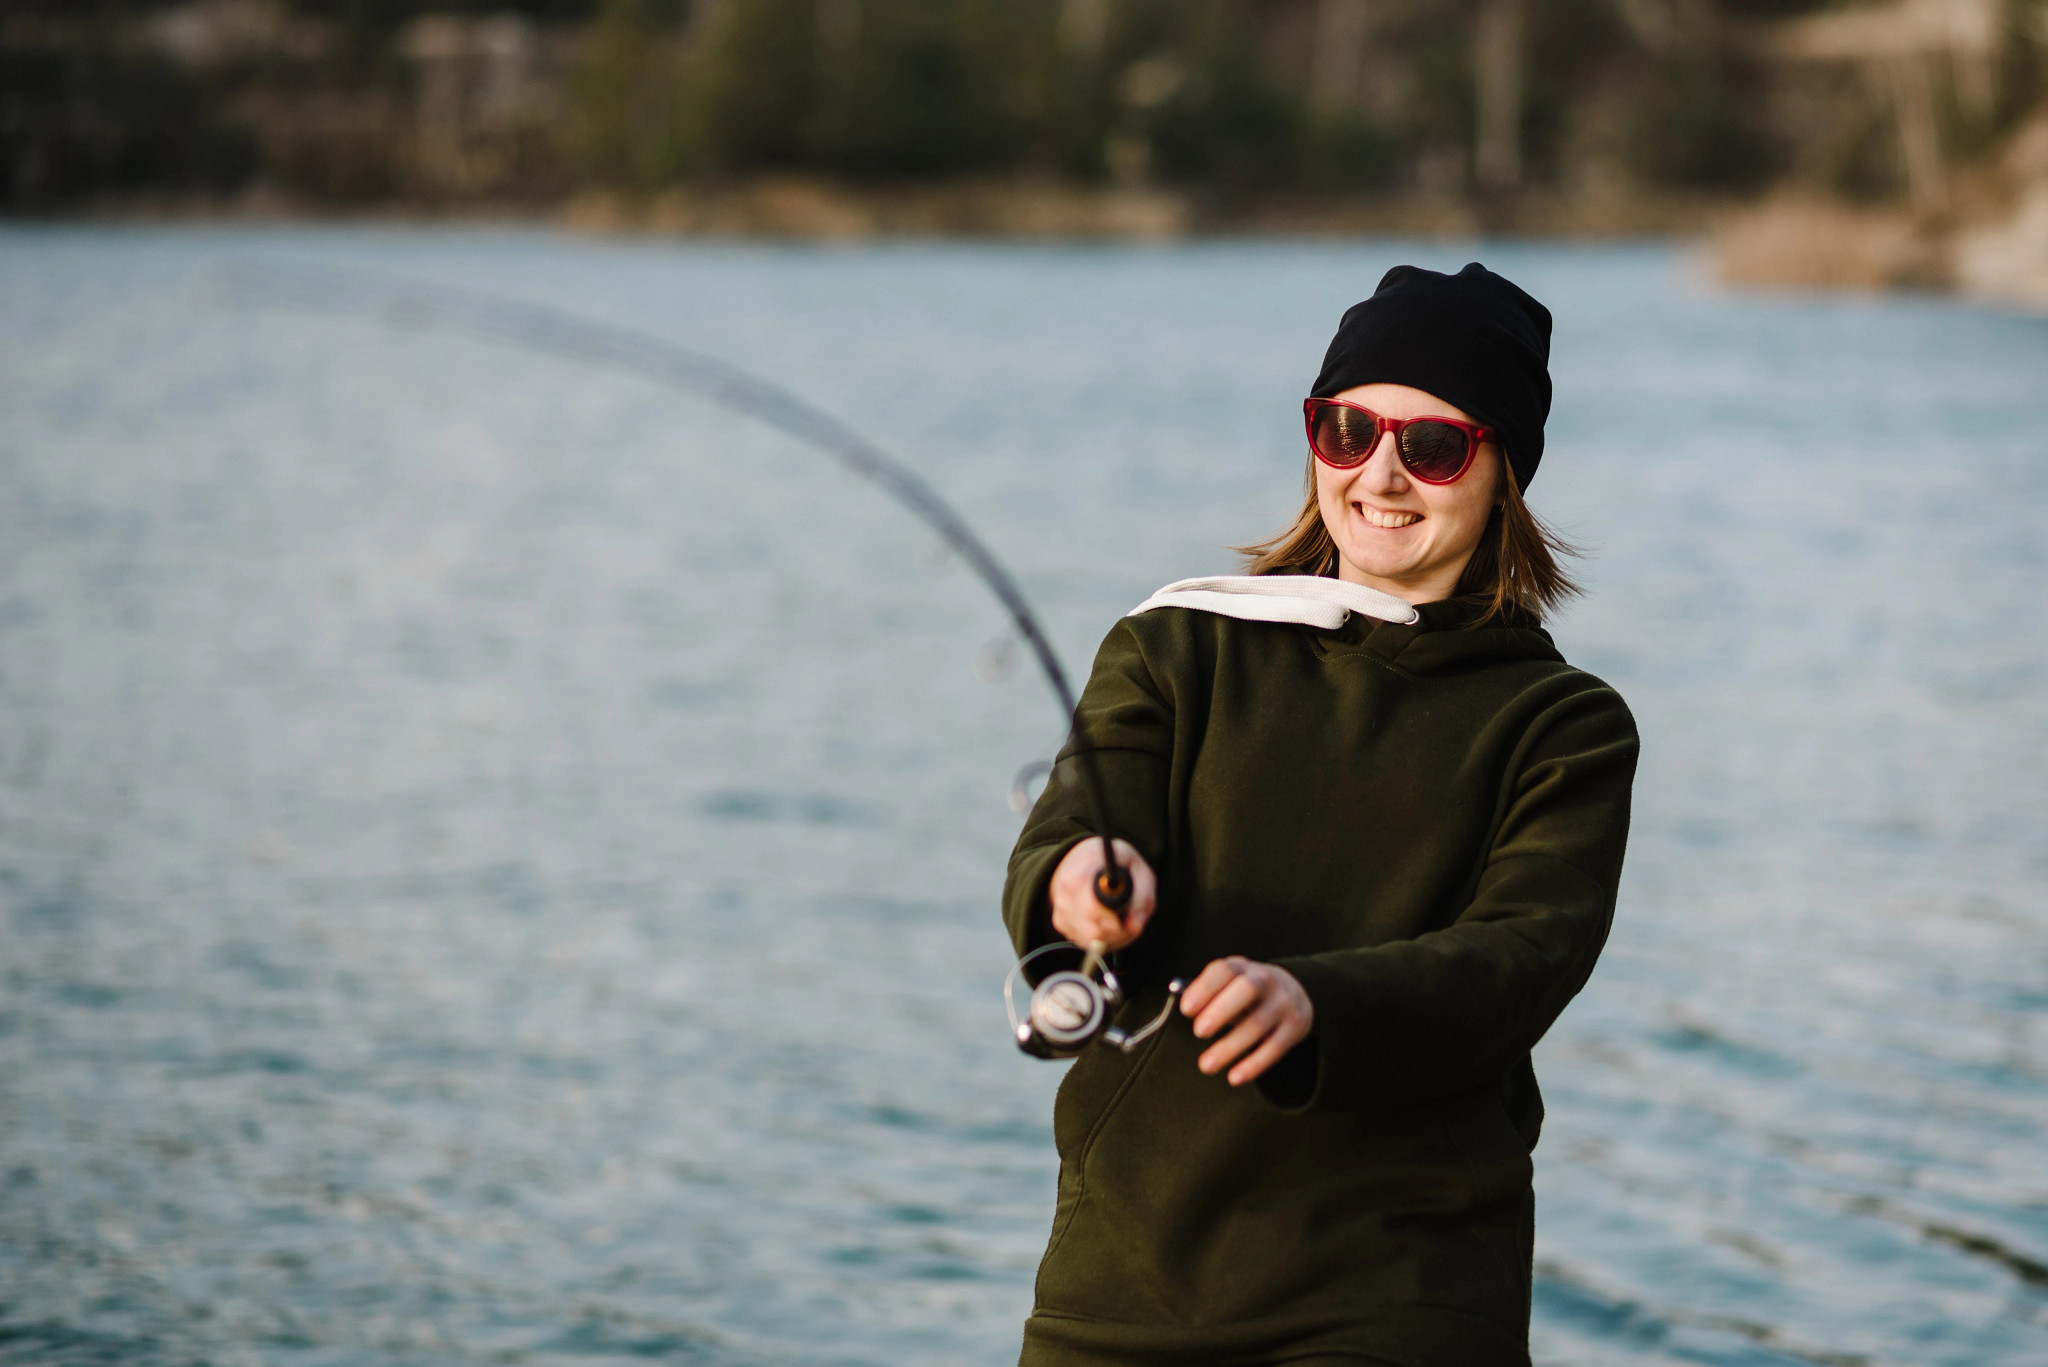 A female angler smiles while holding a fishing rod near a river.